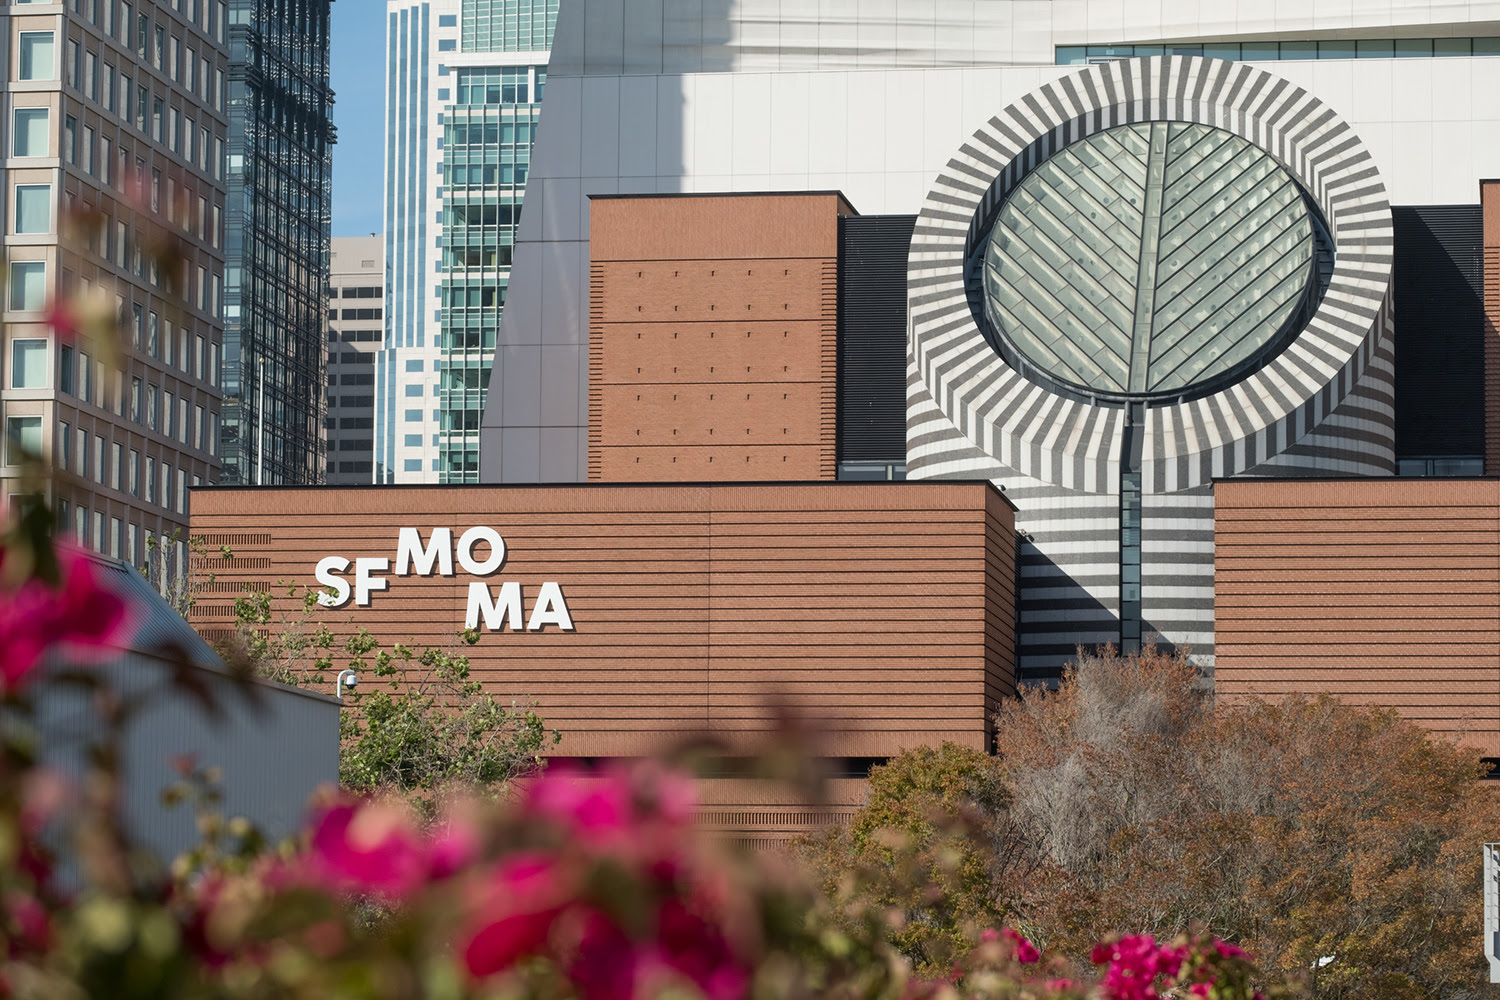 The San Francisco Museum of Modern Art façade viewed from the park across the street. Pink flowers frame the bottom left corner of the image.